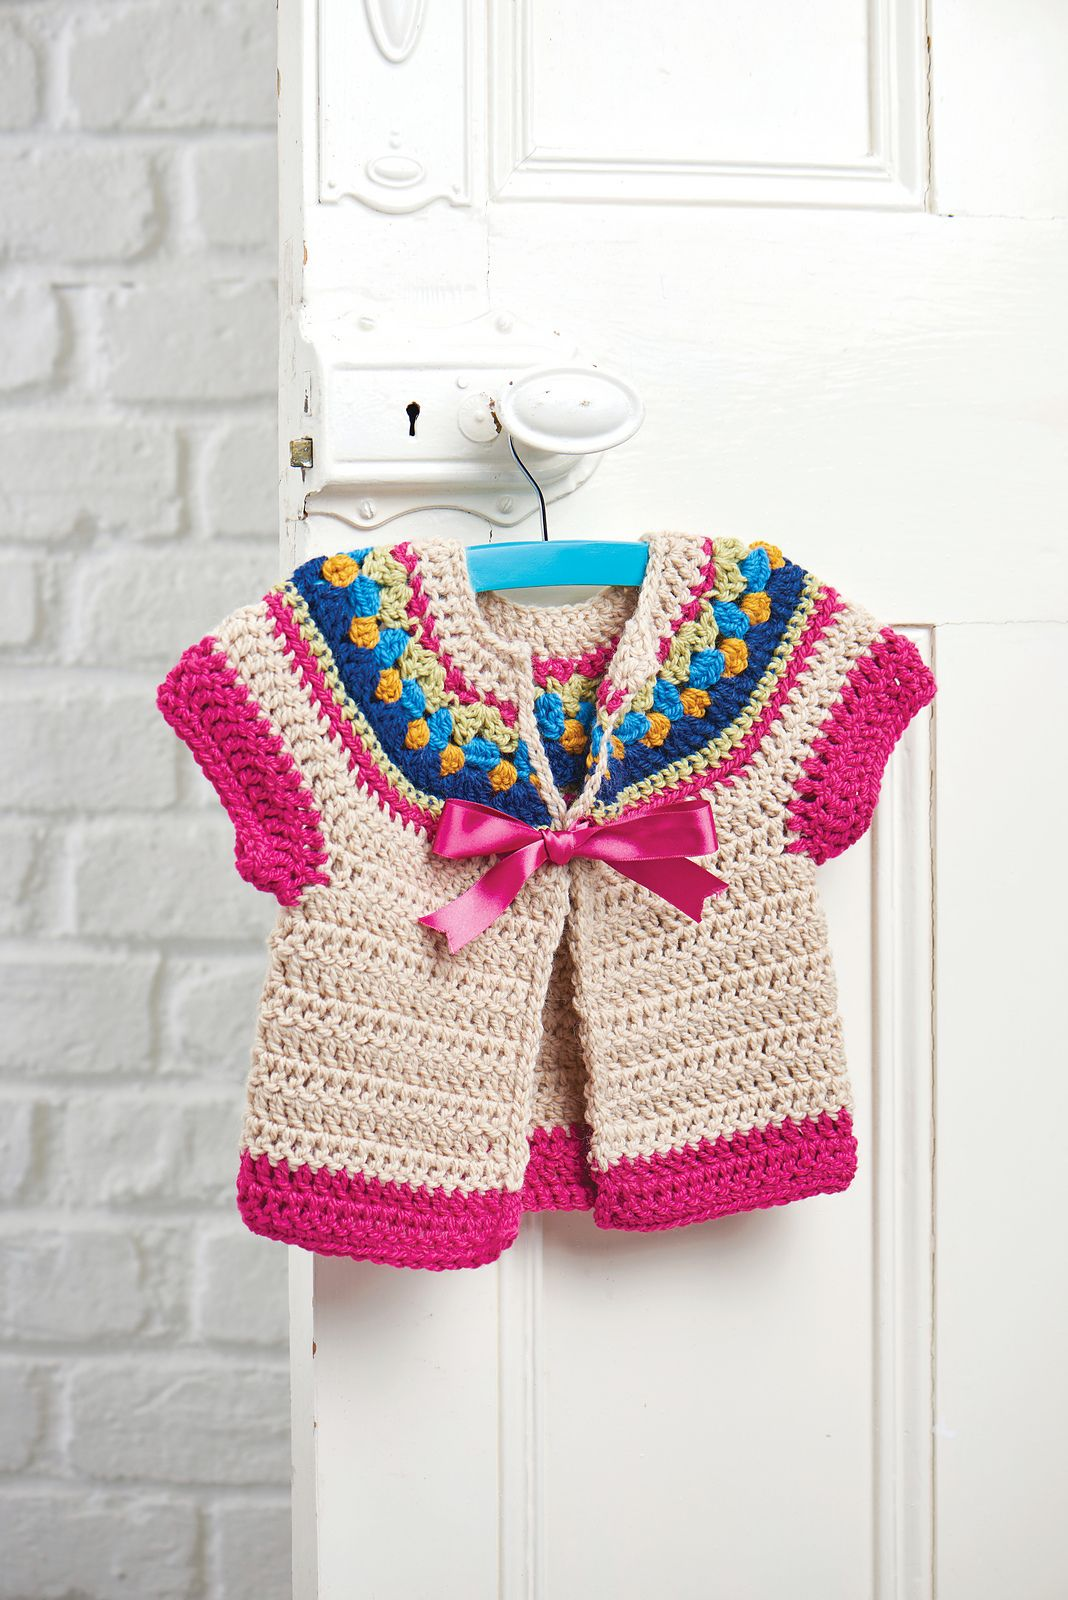 Ravelry: Sugar & Spice pattern by Simone Francis